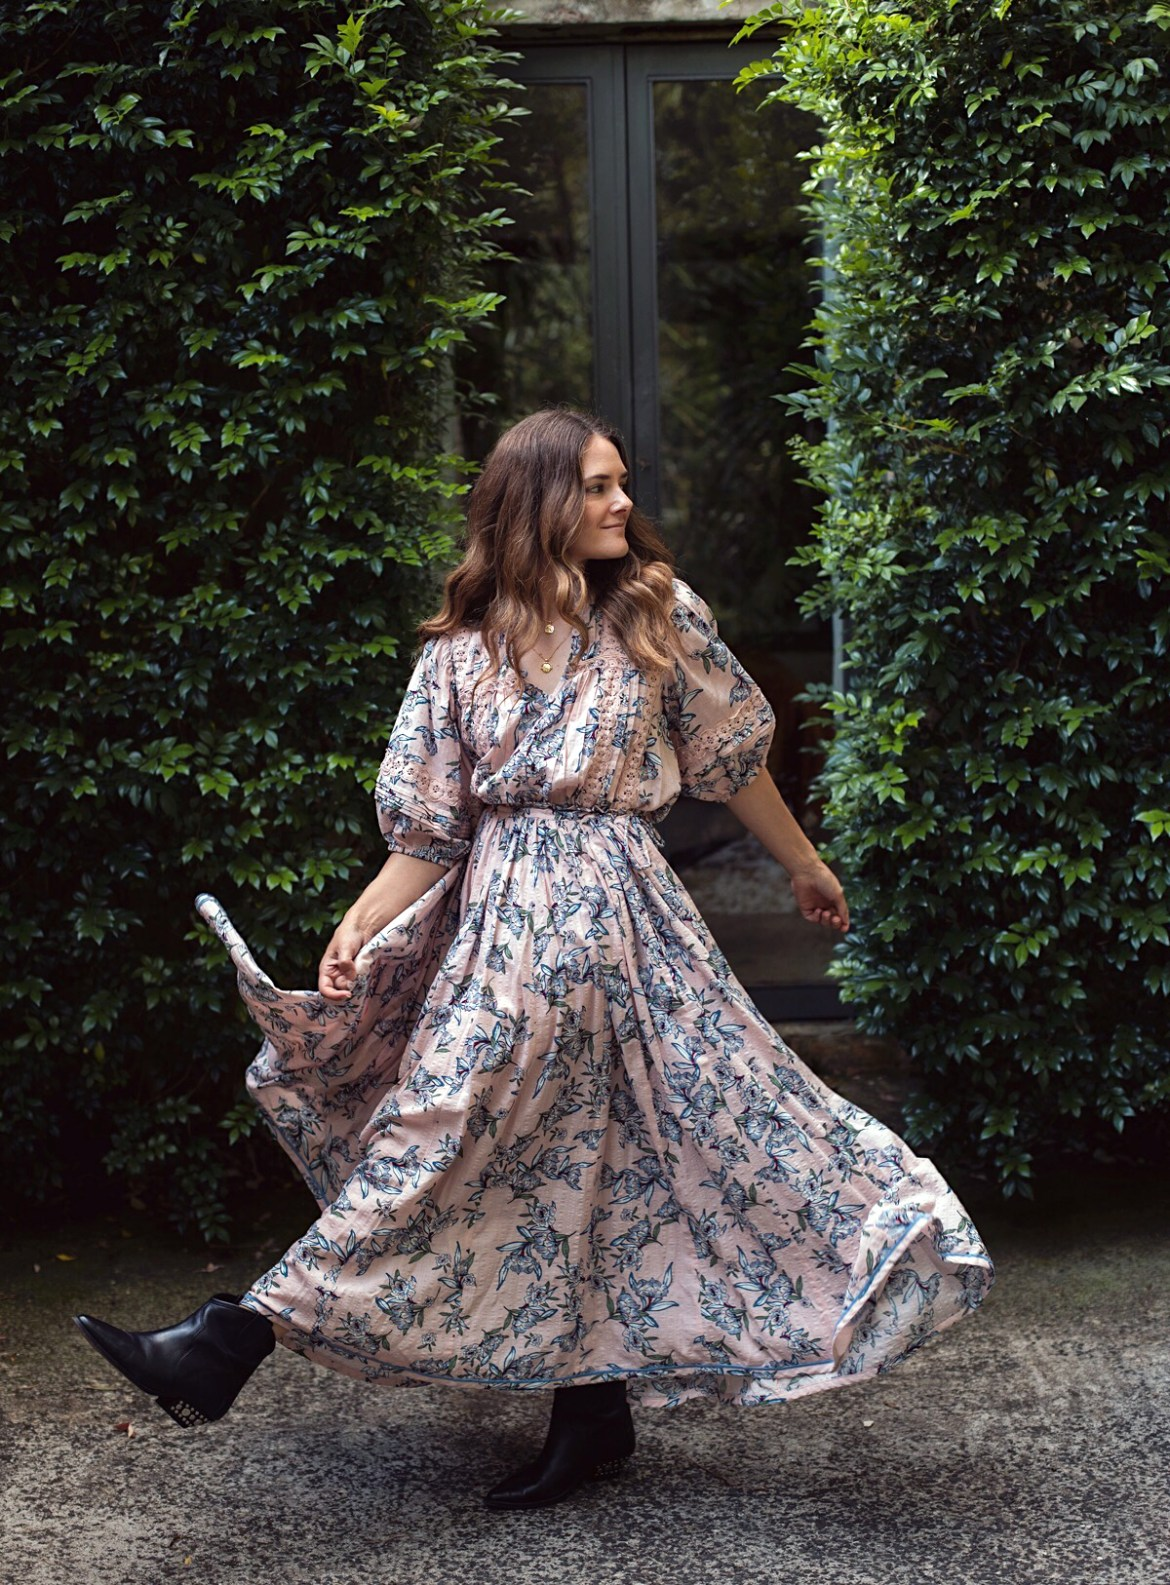 Bohemian Traders daydreamer print top and skirt and Isabel Marant boots worn by Australian fashion blogger Jenelle Witty from Inspiring Wit